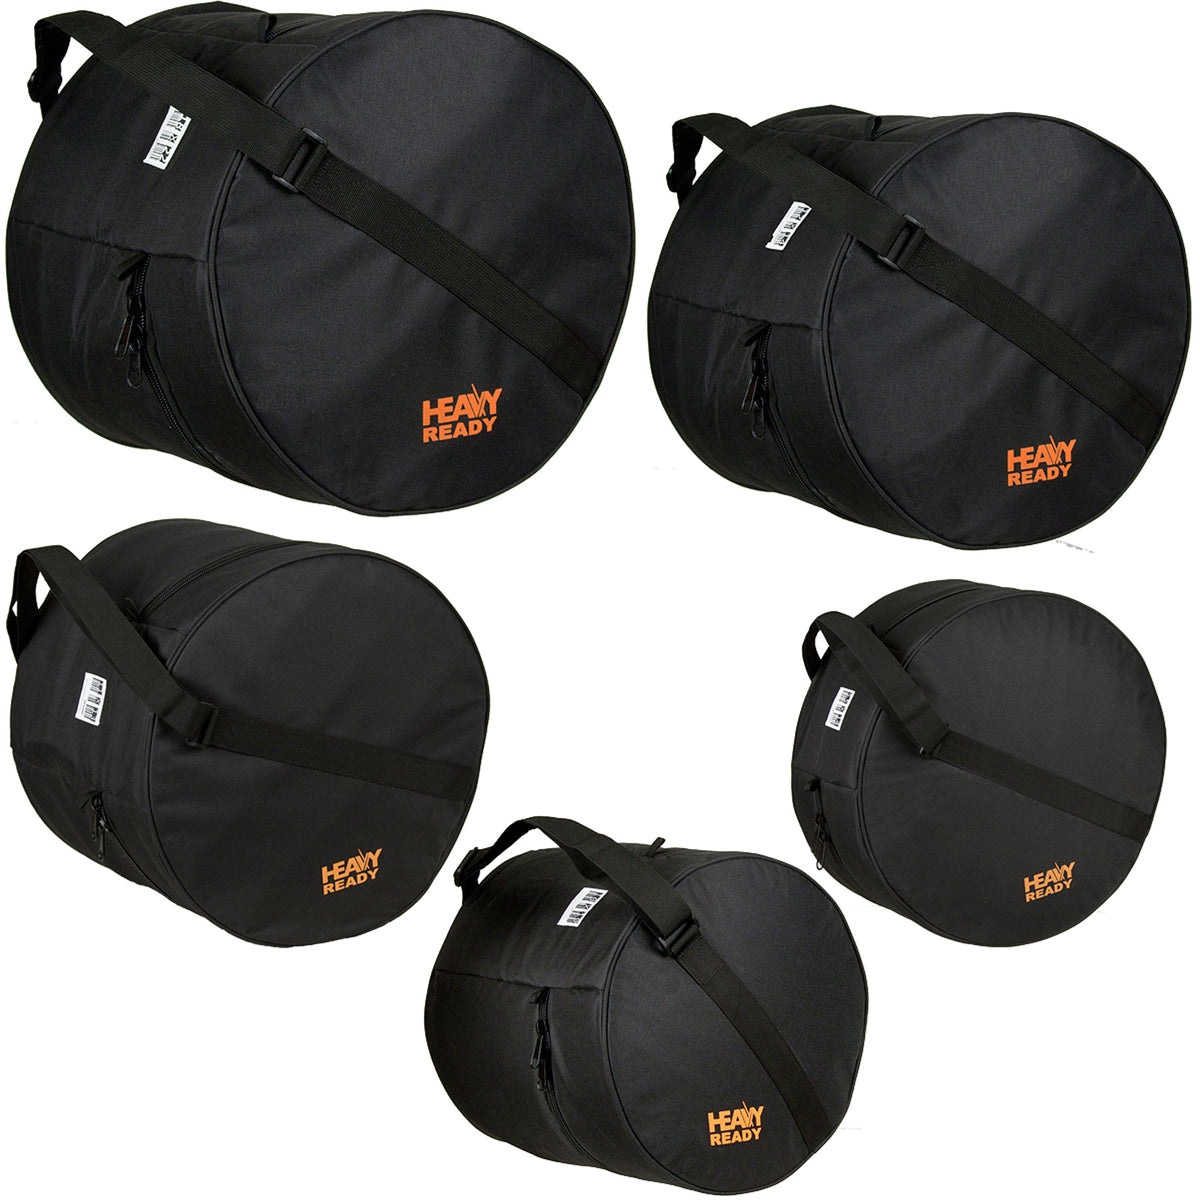 PROTEC Heavy Ready 5pc Bag Kit - Fusion 1